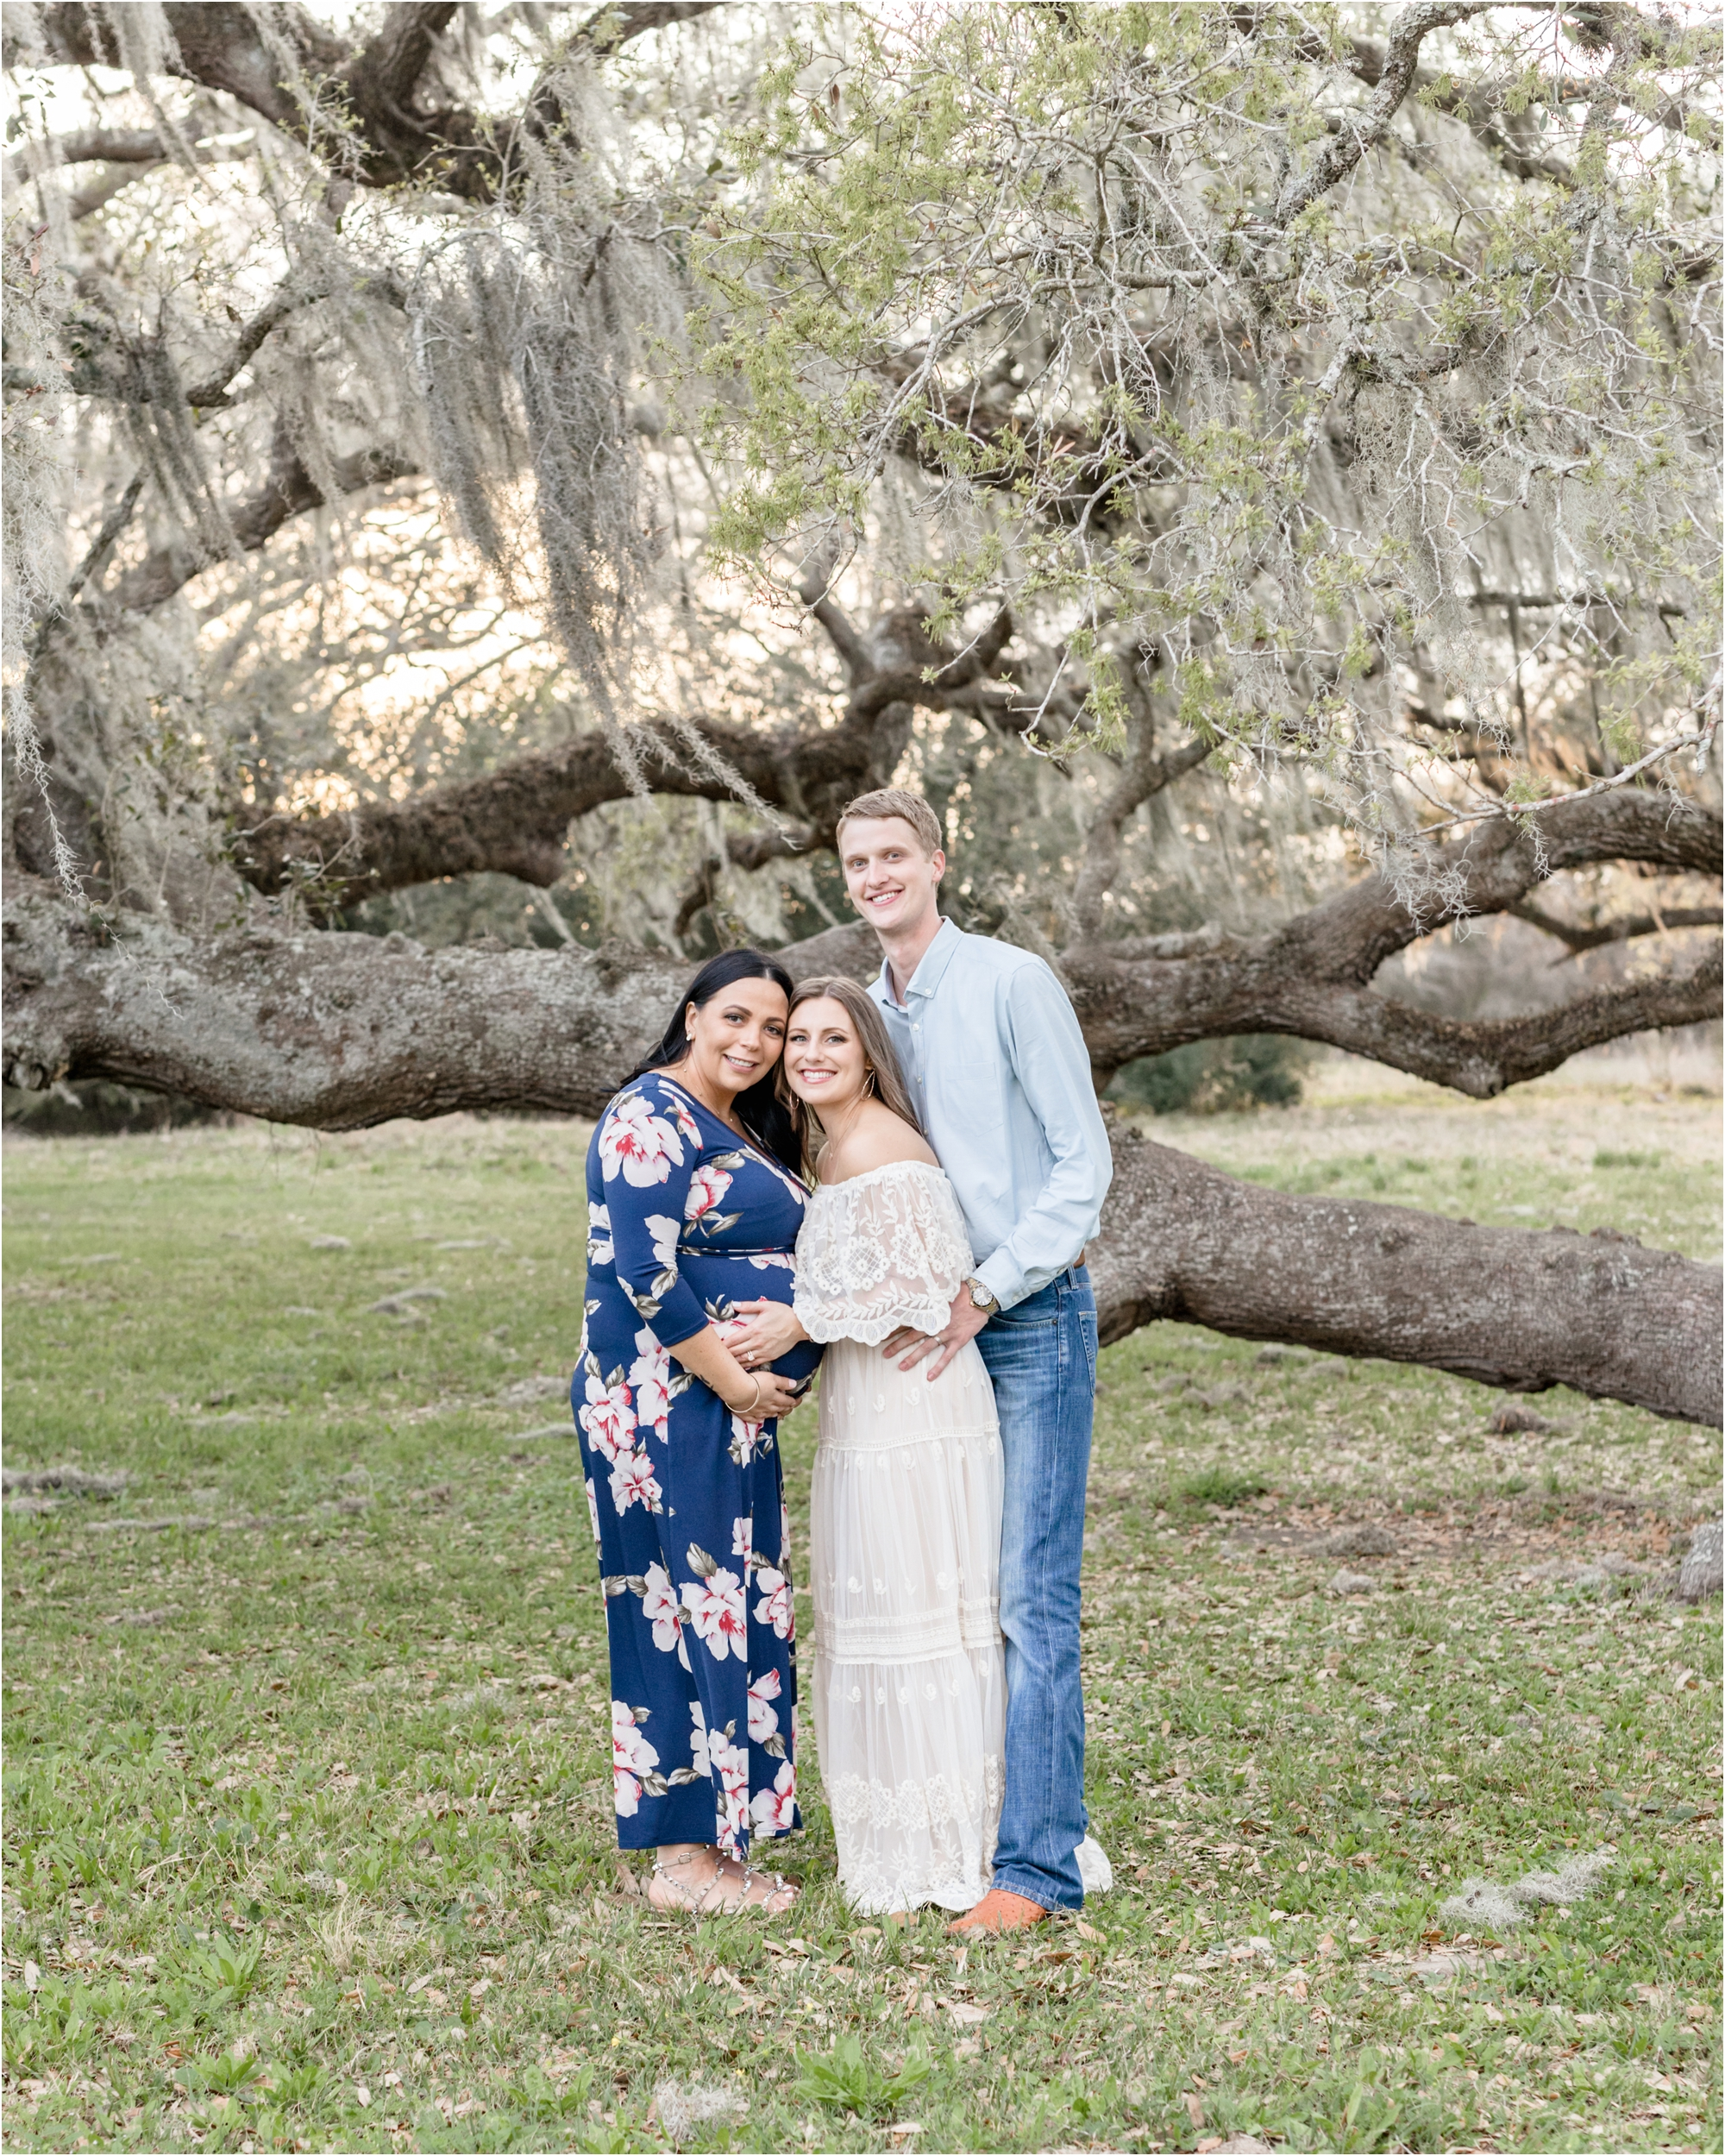 Couple with surrogate mother smiling at camera under moss-covered tree in Houston, TX area. Photo by Houston maternity photographer, Lifetime of Clicks Photography.